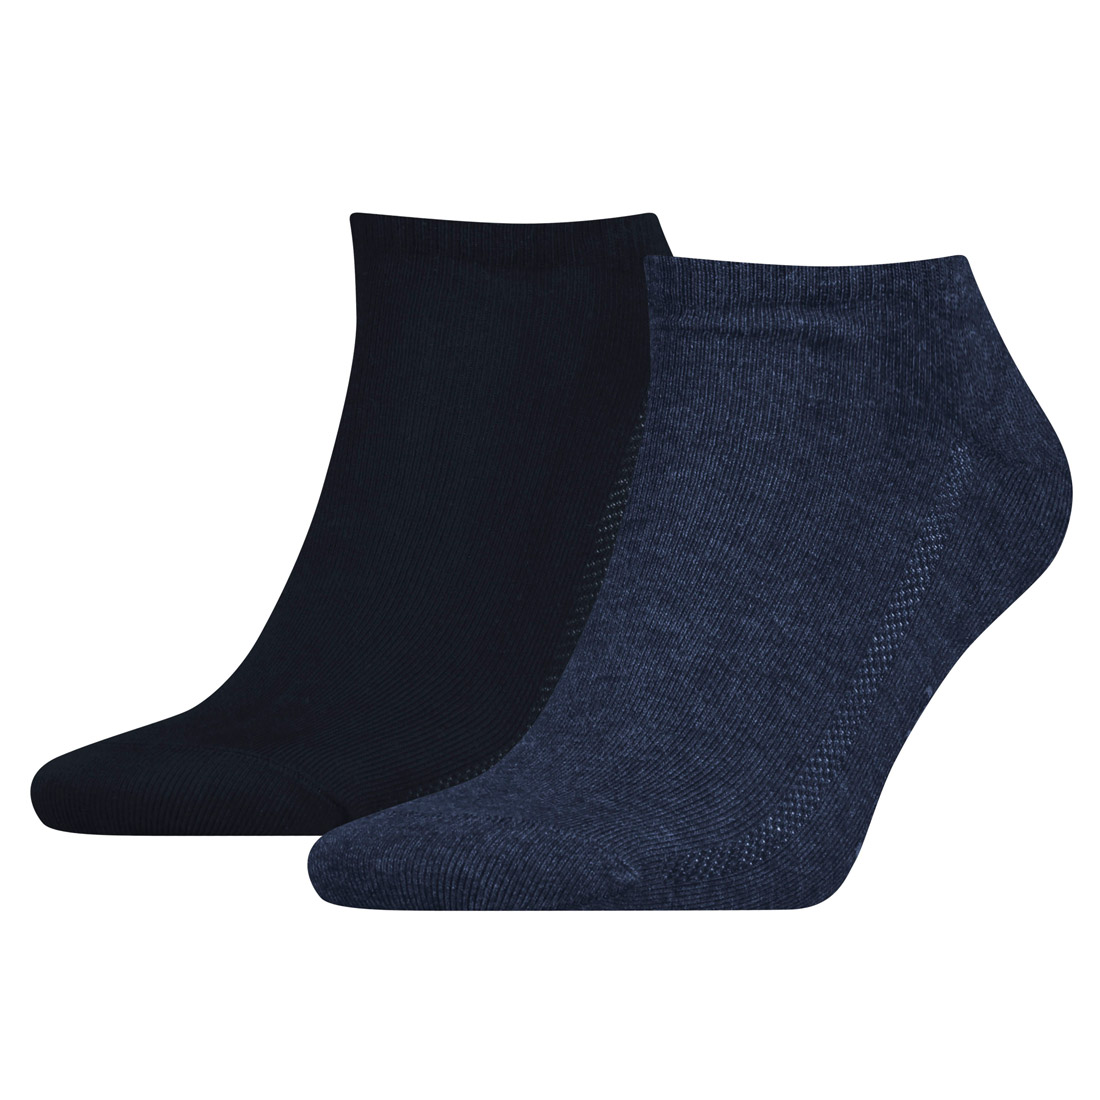 2 Paar Levis Unisex Socken 168SF Low Cut Sneakersocken Kurzsocken 35-38, 460 denim blue von Levi's